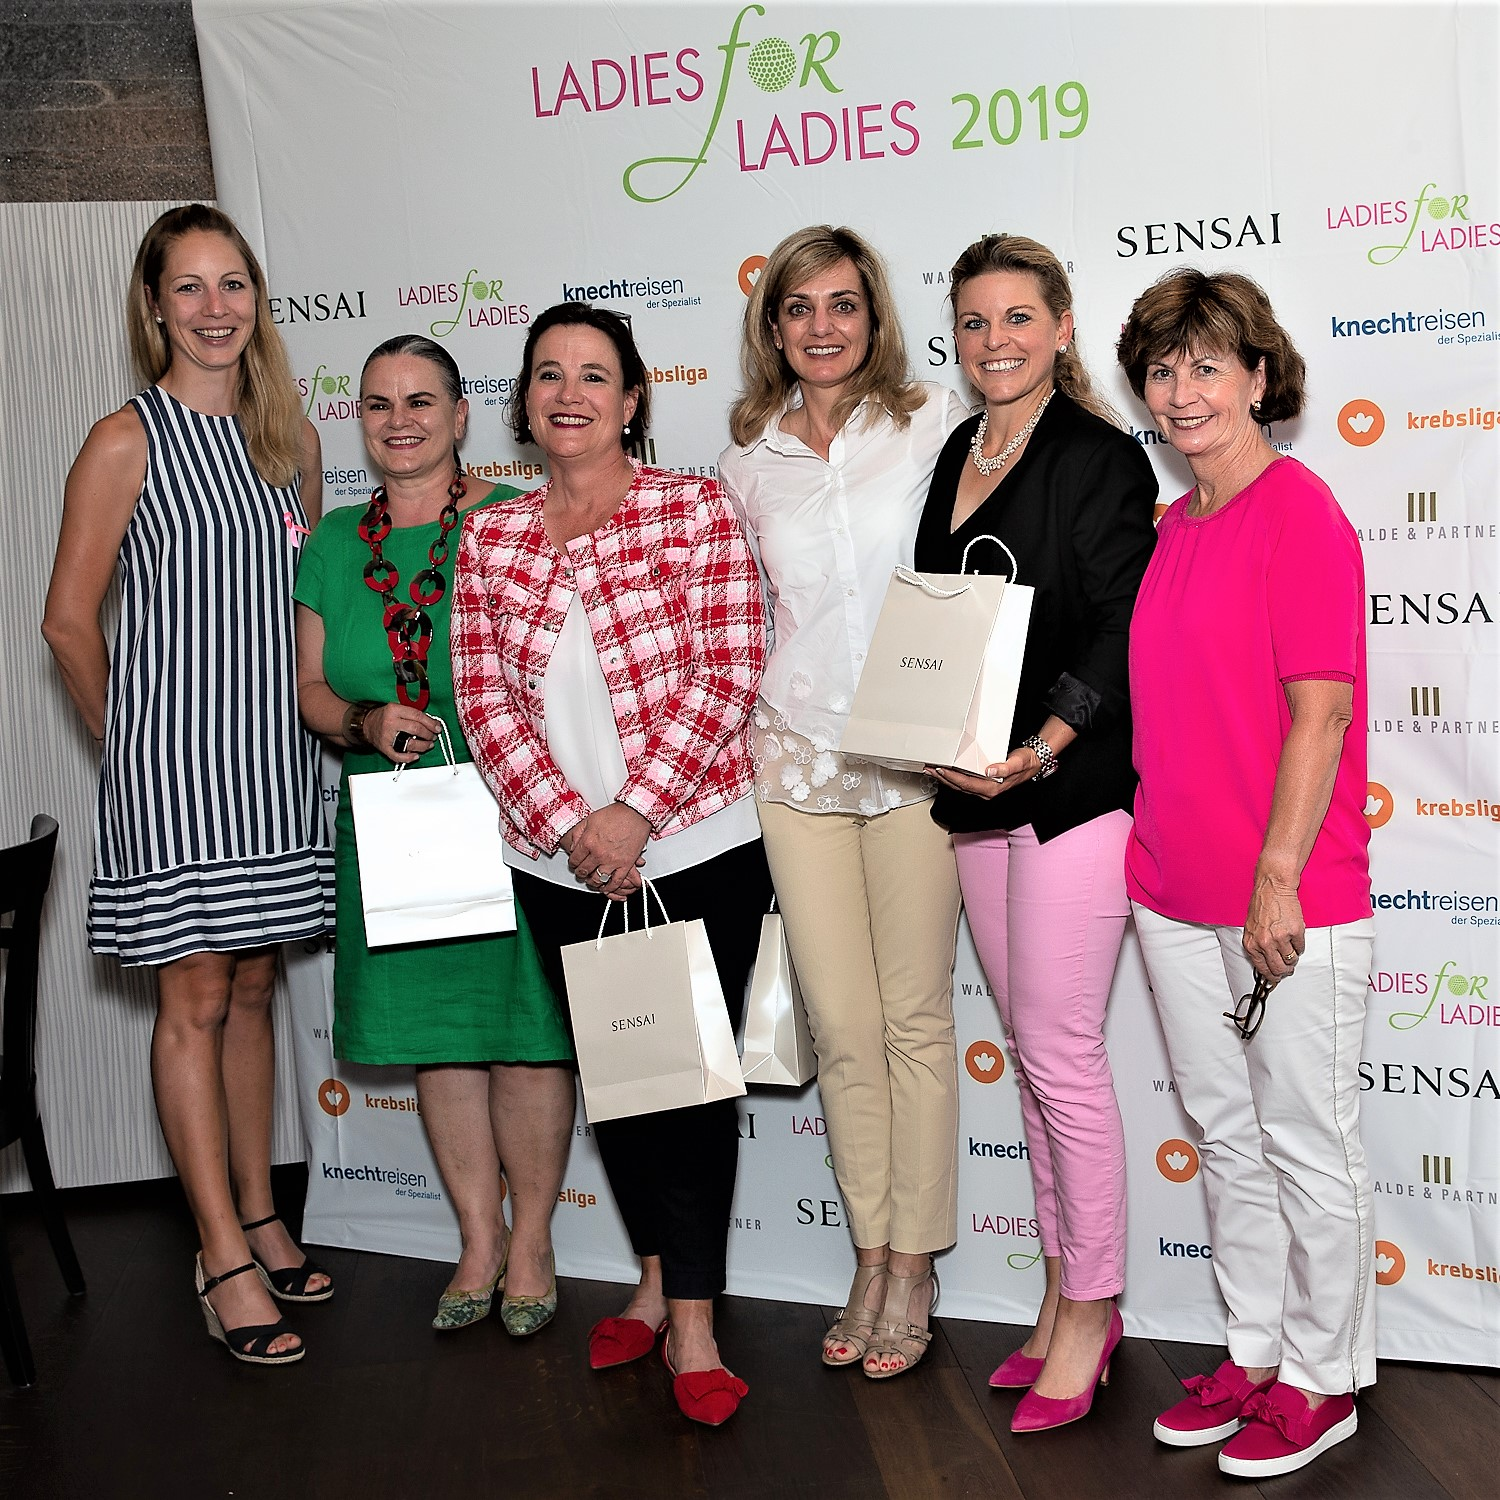 LADIES-for-LADIES-Charity-Golftour - zu Gunsten der Krebshilfe at Golfclub Küssnacht am Rigi - 19-07-09- Daniel H. Stauffer/photo - 2019©stauffi.com